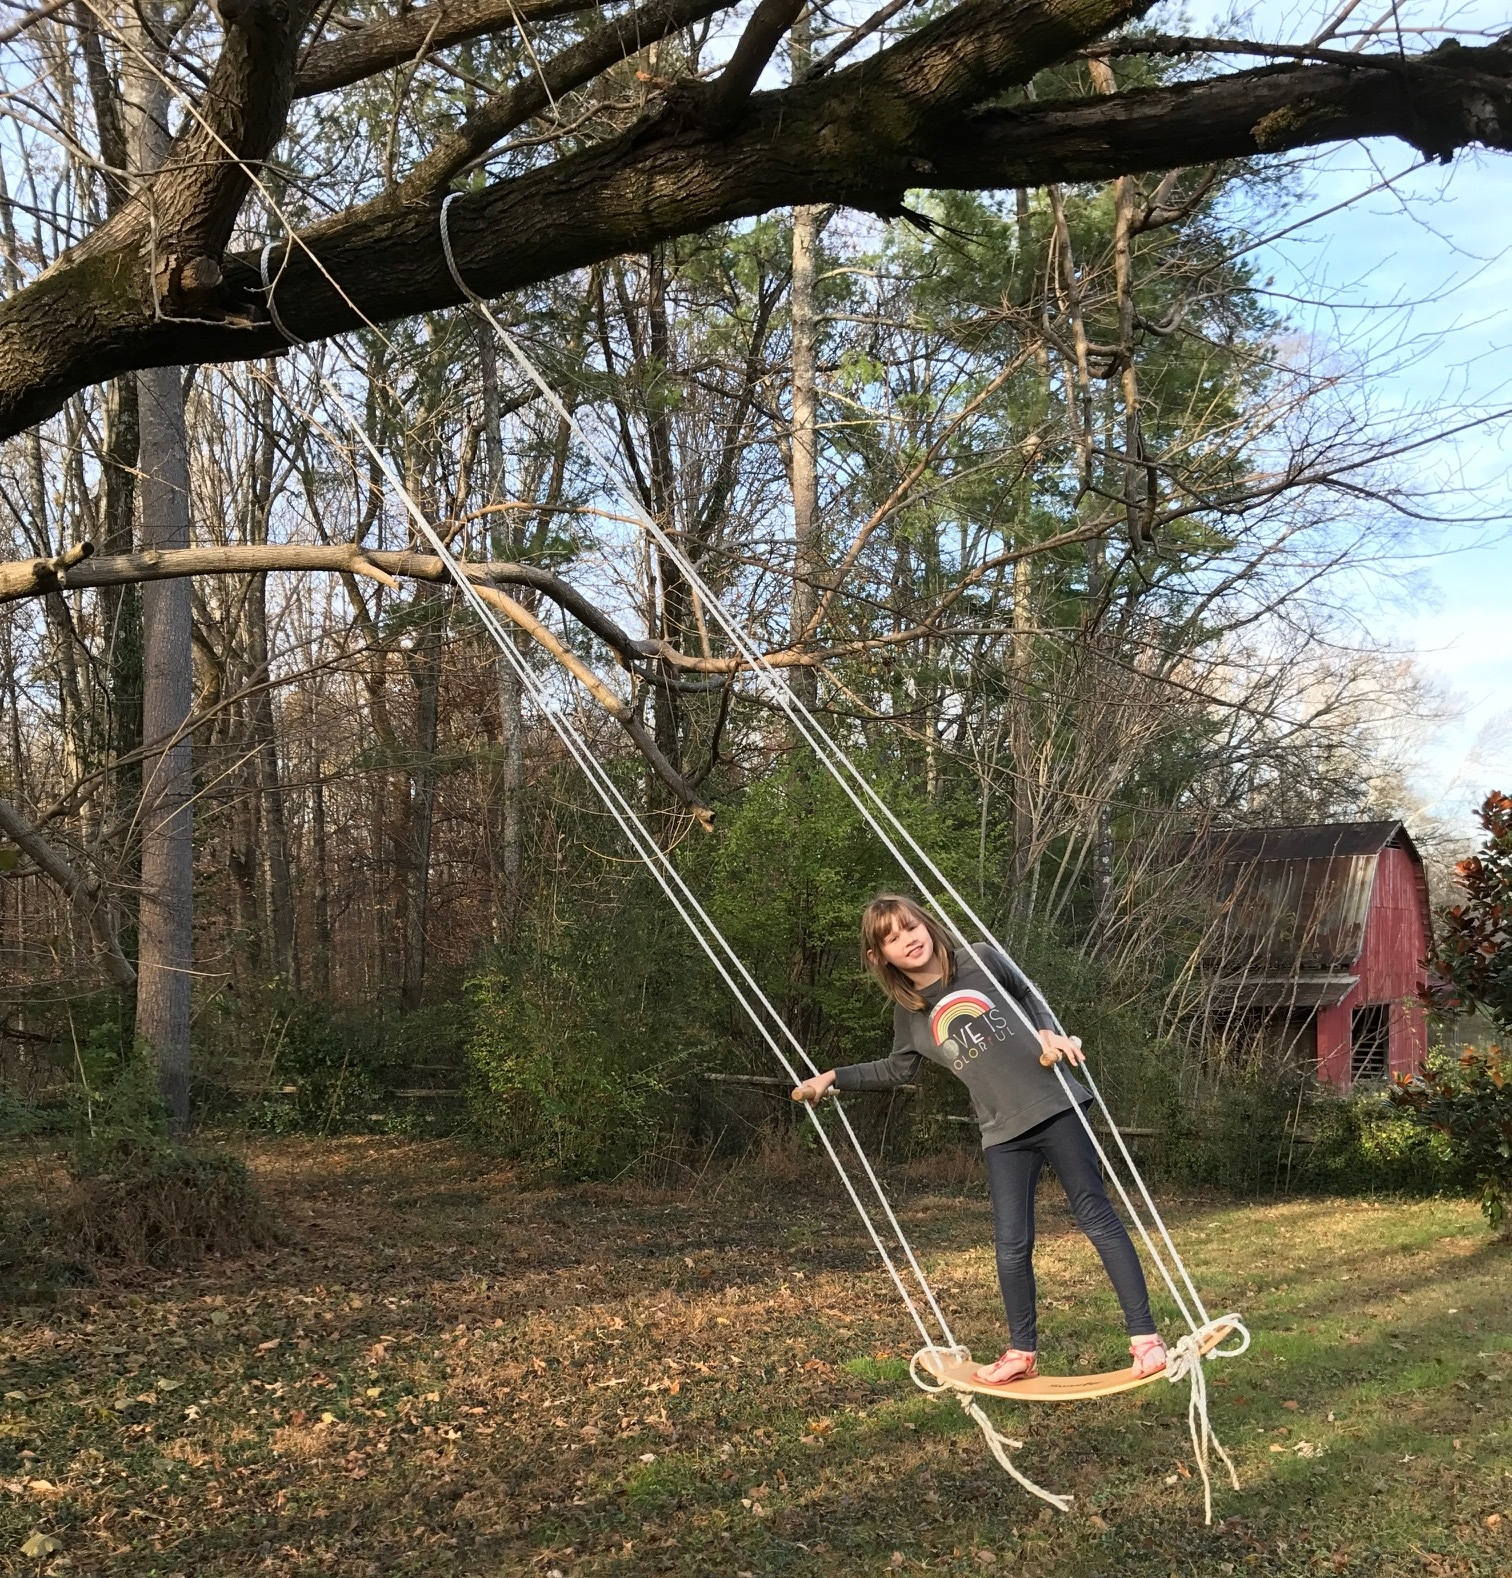 It may look like just a swing but it is so much more fun.